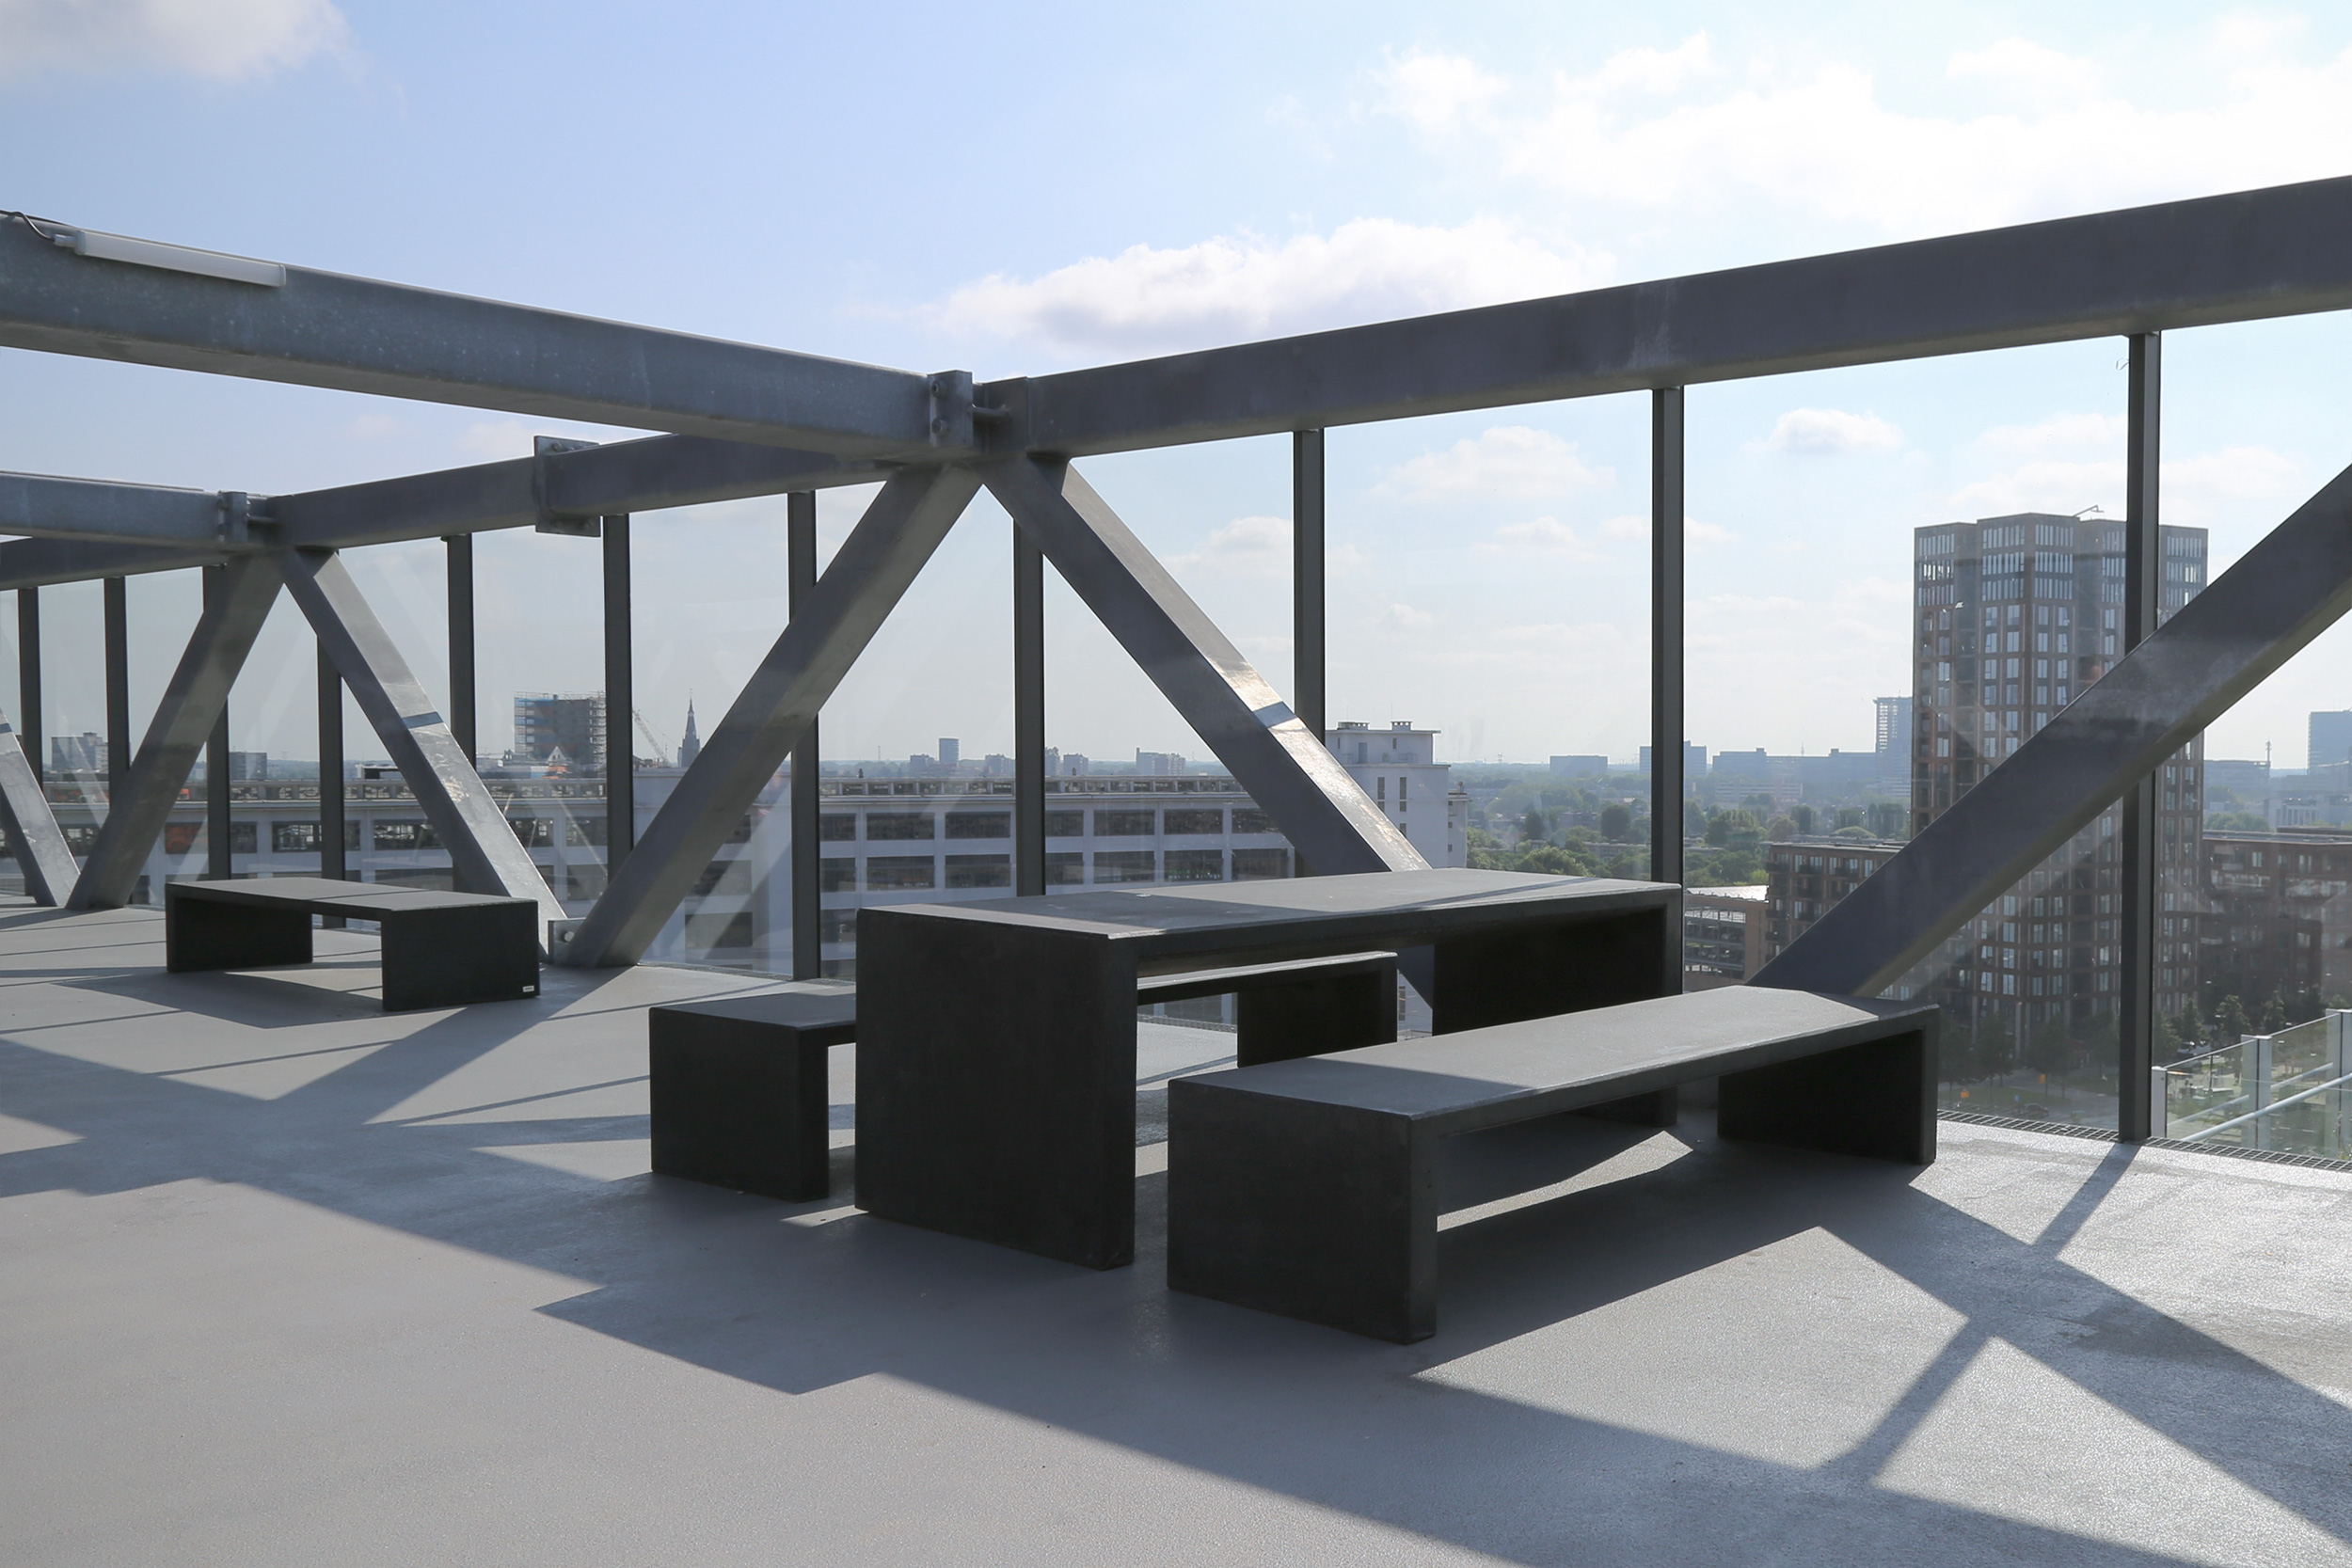 Klokgebouw building with its terrace facing Eindhoven. Benches and tables by Durbanis design firm.